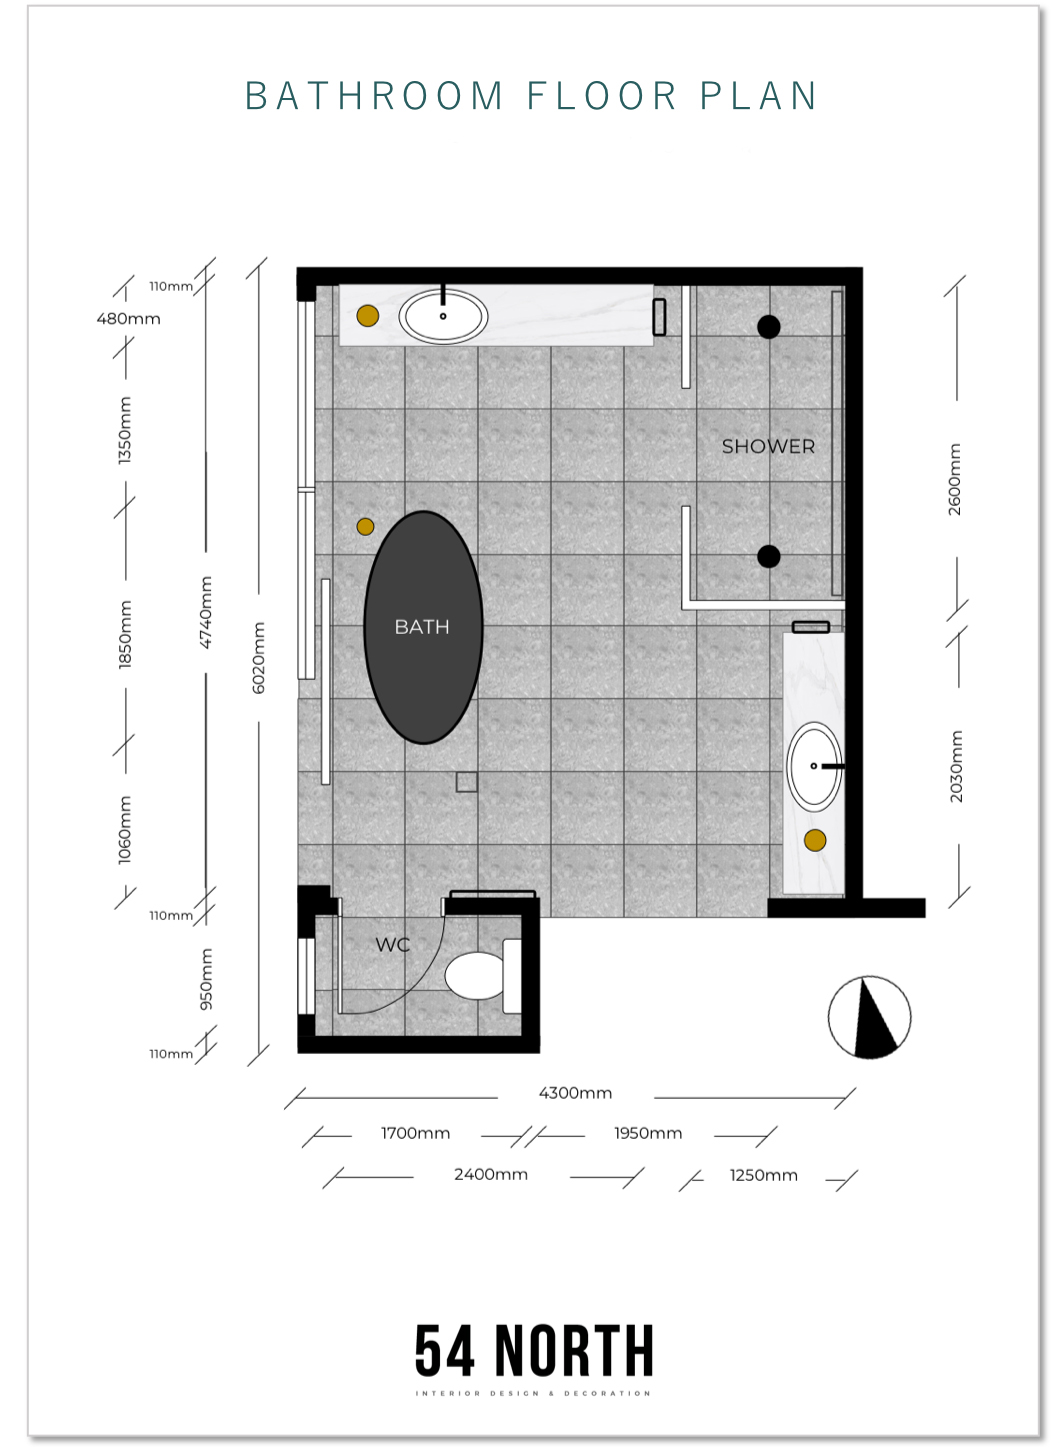 Bathroom Floor Plan S10 copy (Edited).jpg